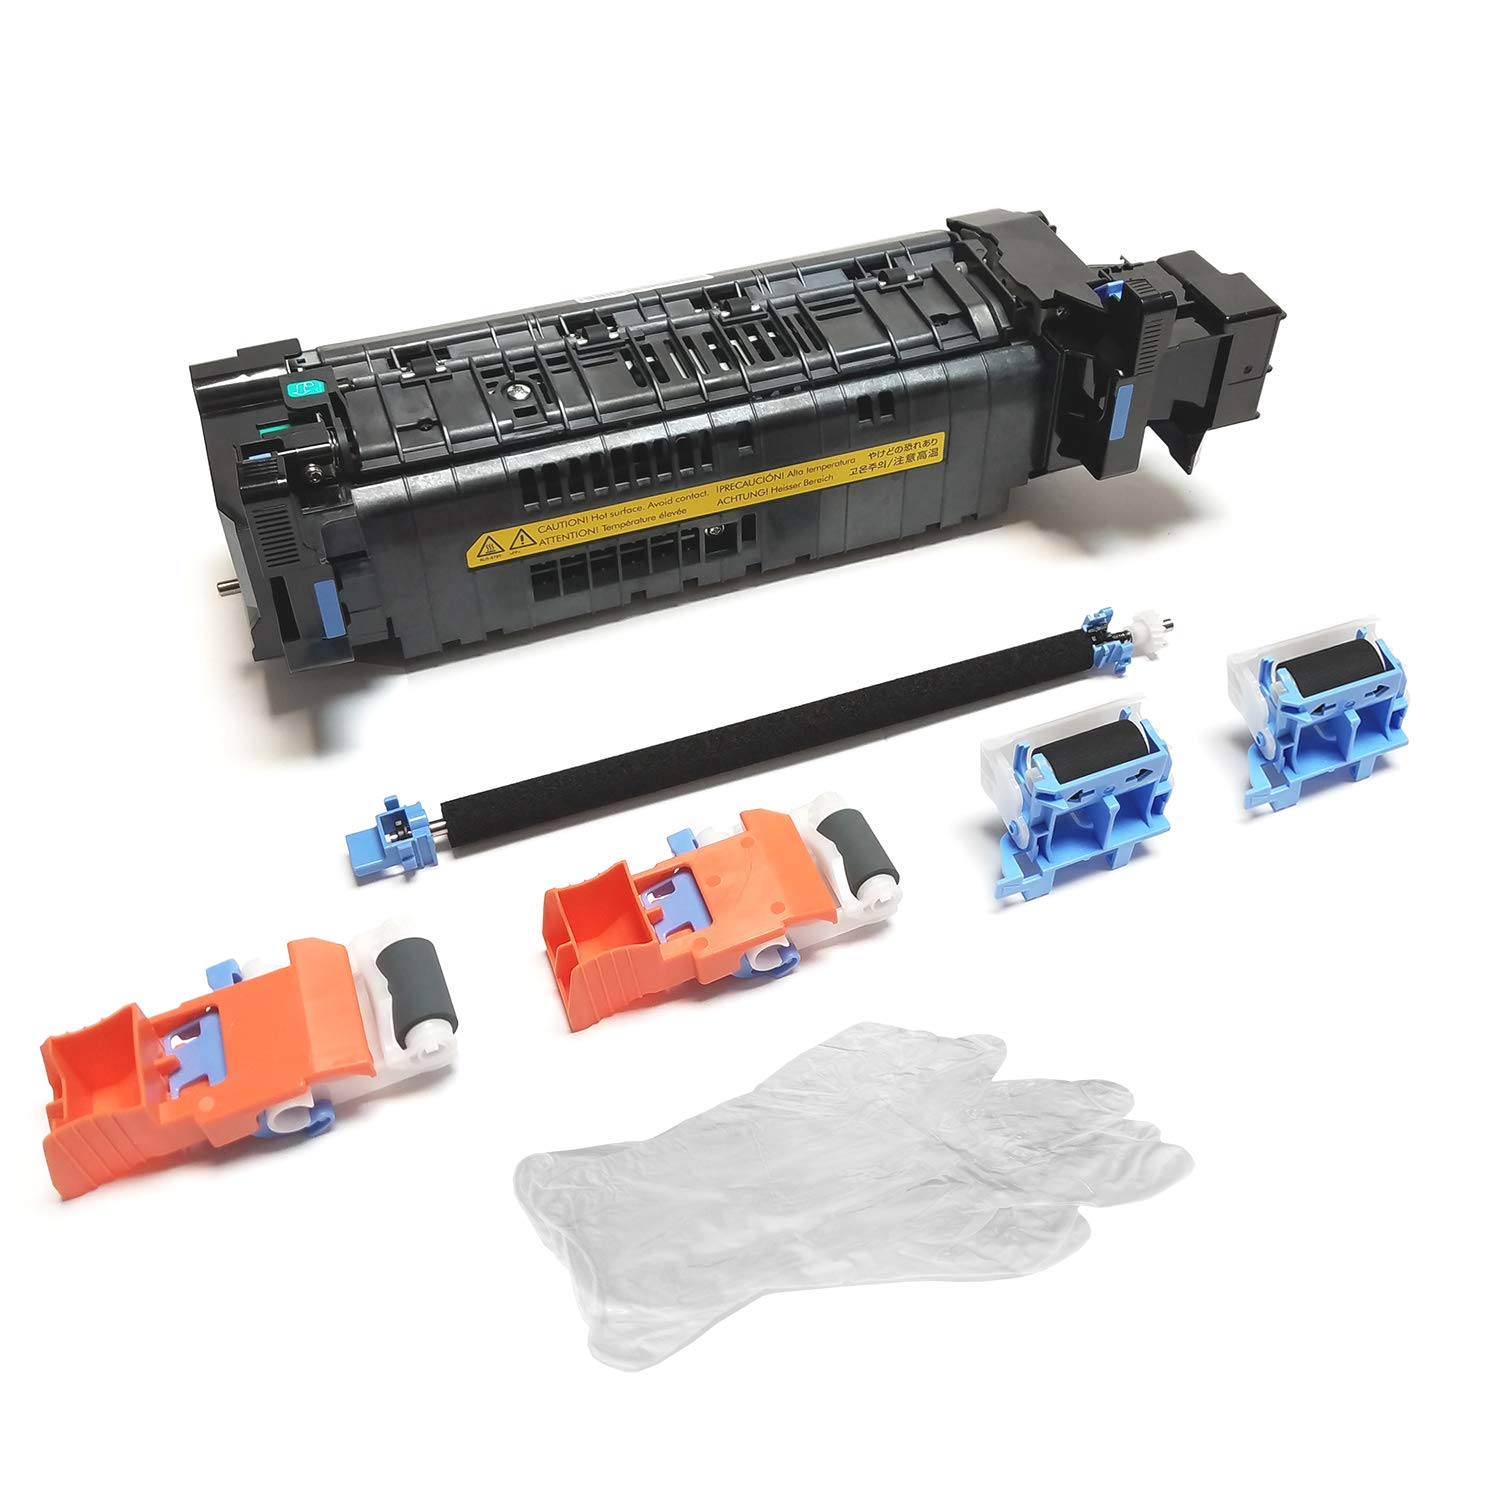 Altru Print L0H24A-AP (L0H24-67901) Maintenance Kit for HP Laserjet M607, M608, M609, M631, M632, M633 (110V) Includes RM2-1256 Fuser & 2 Sets of J8J70-67904 for Tray 2-6 by Altru Print